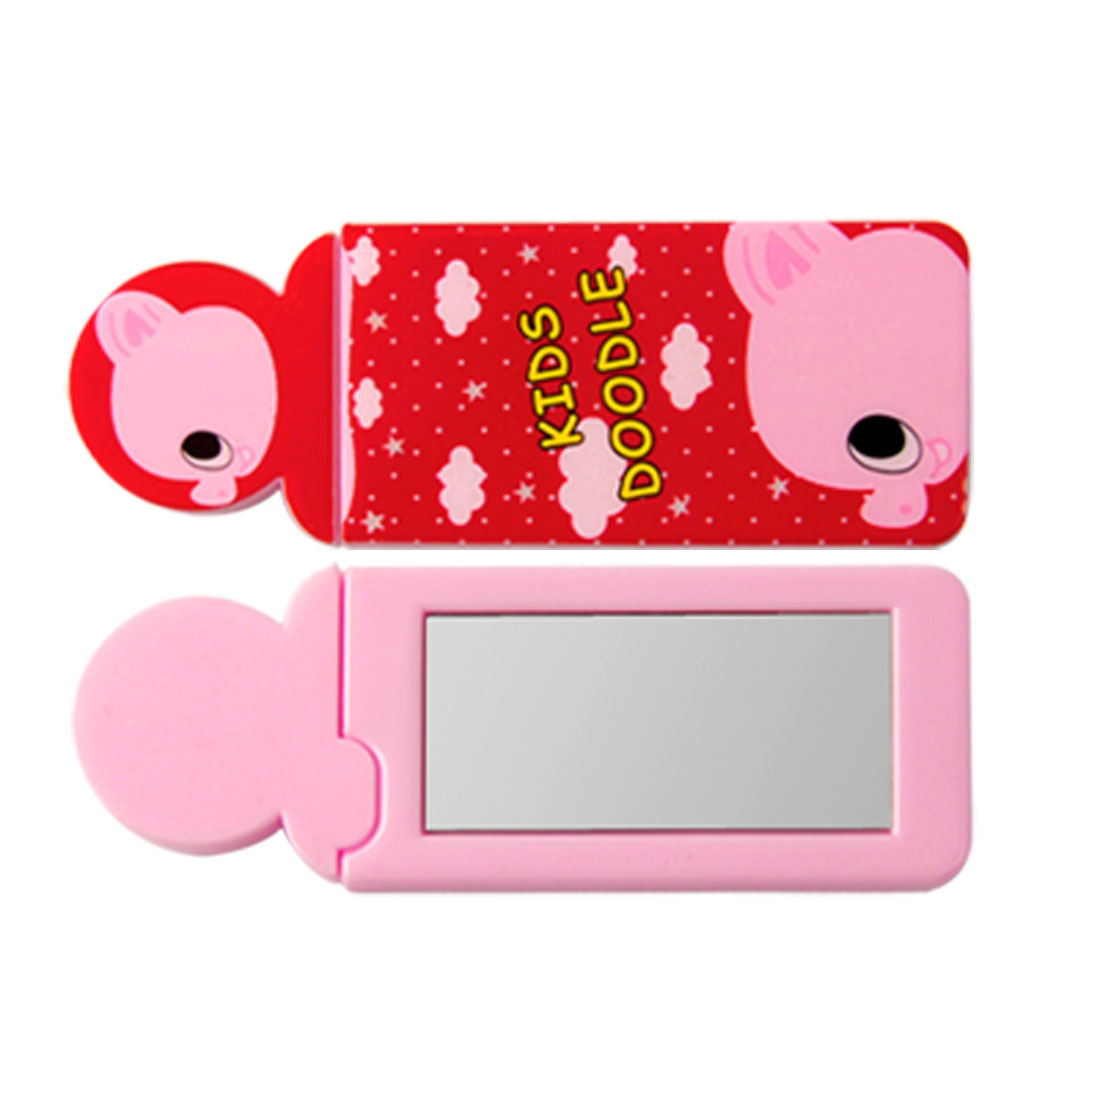 Cute Cartoon Print Makeup Pocket Mirror Pink Red 2 Pcs w Comb